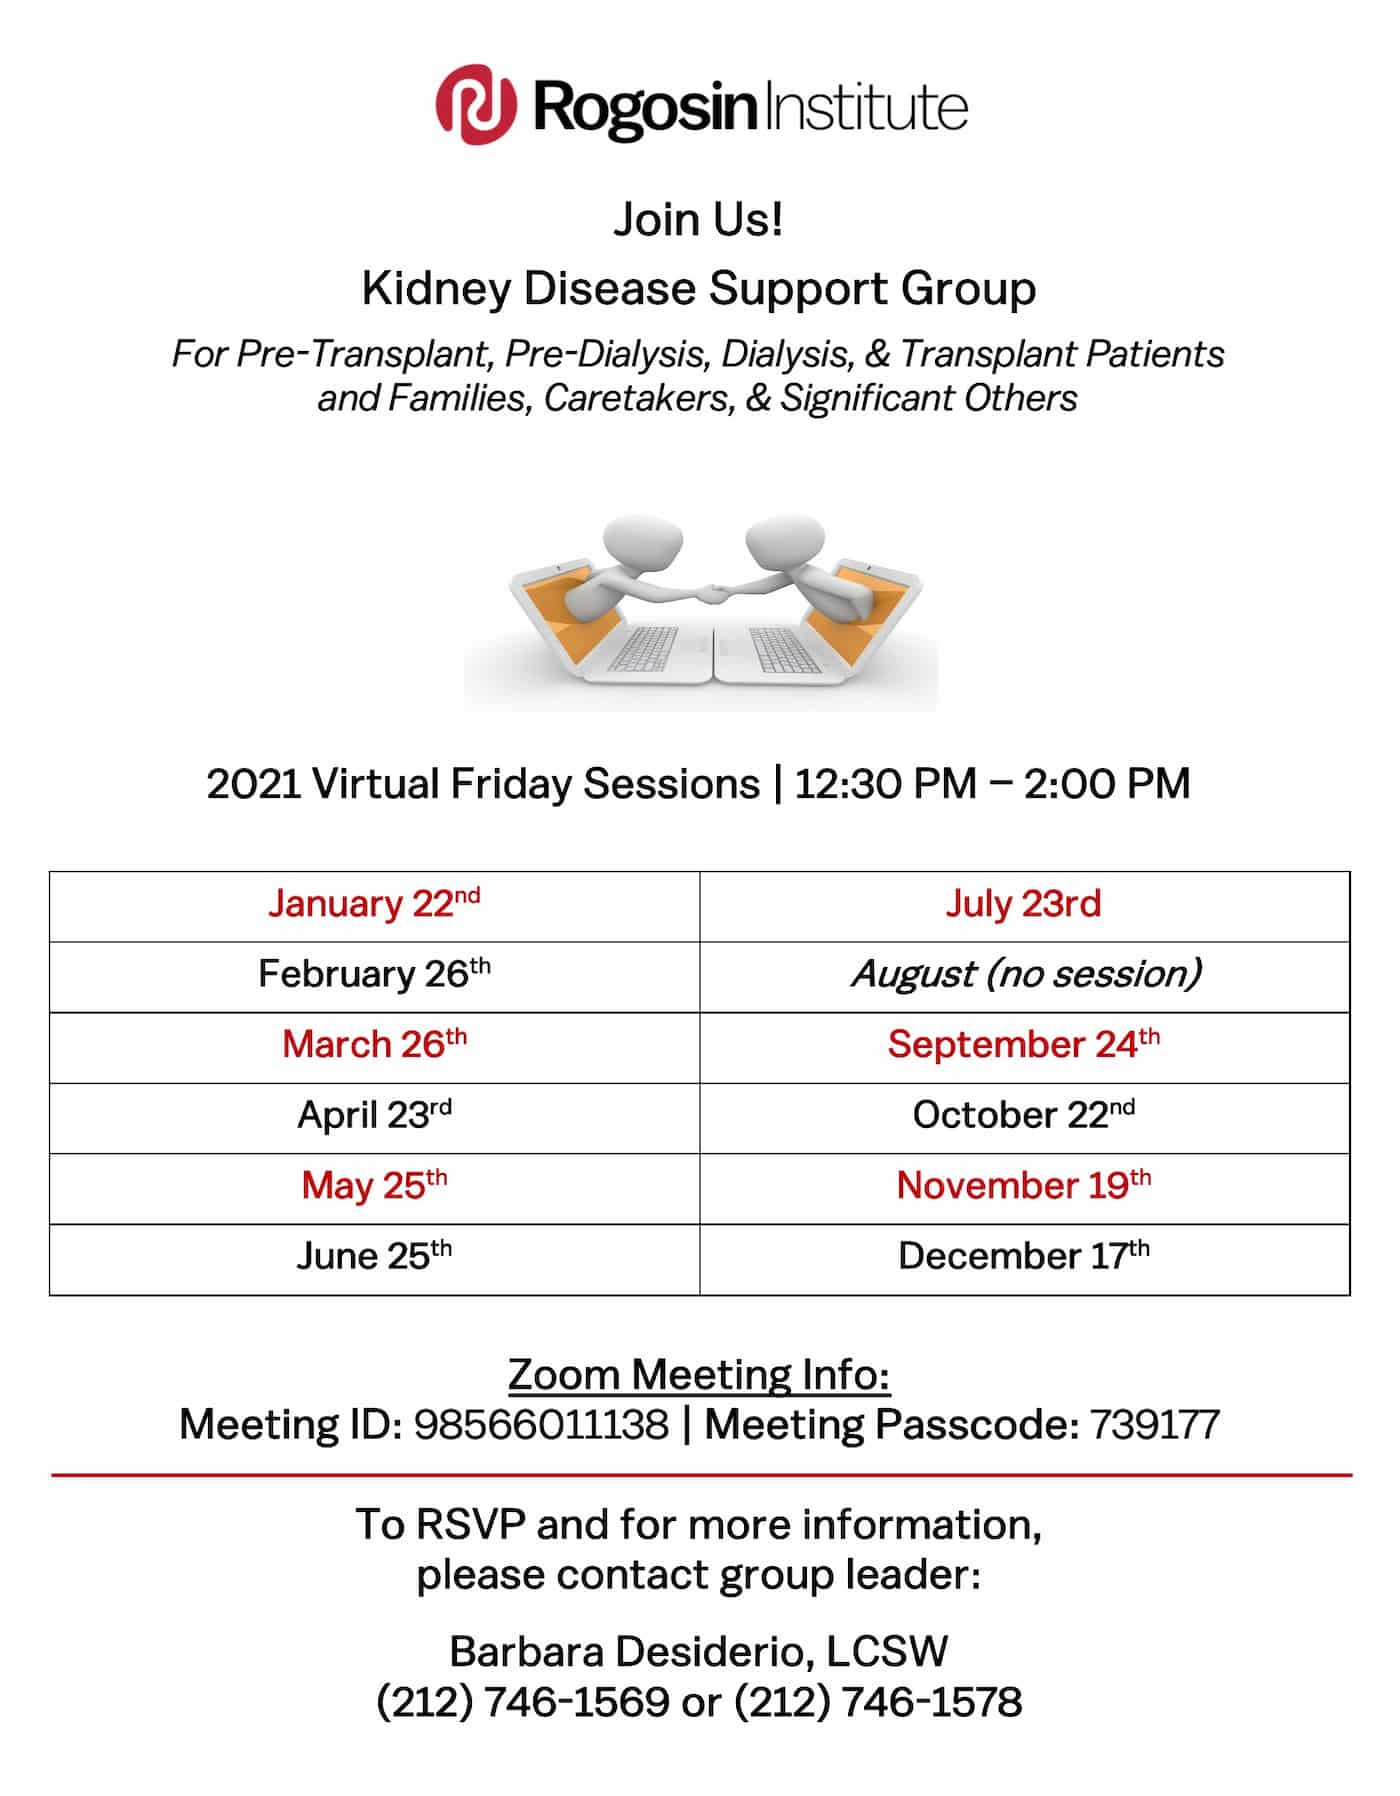 2021 Kidney Disease Support Group